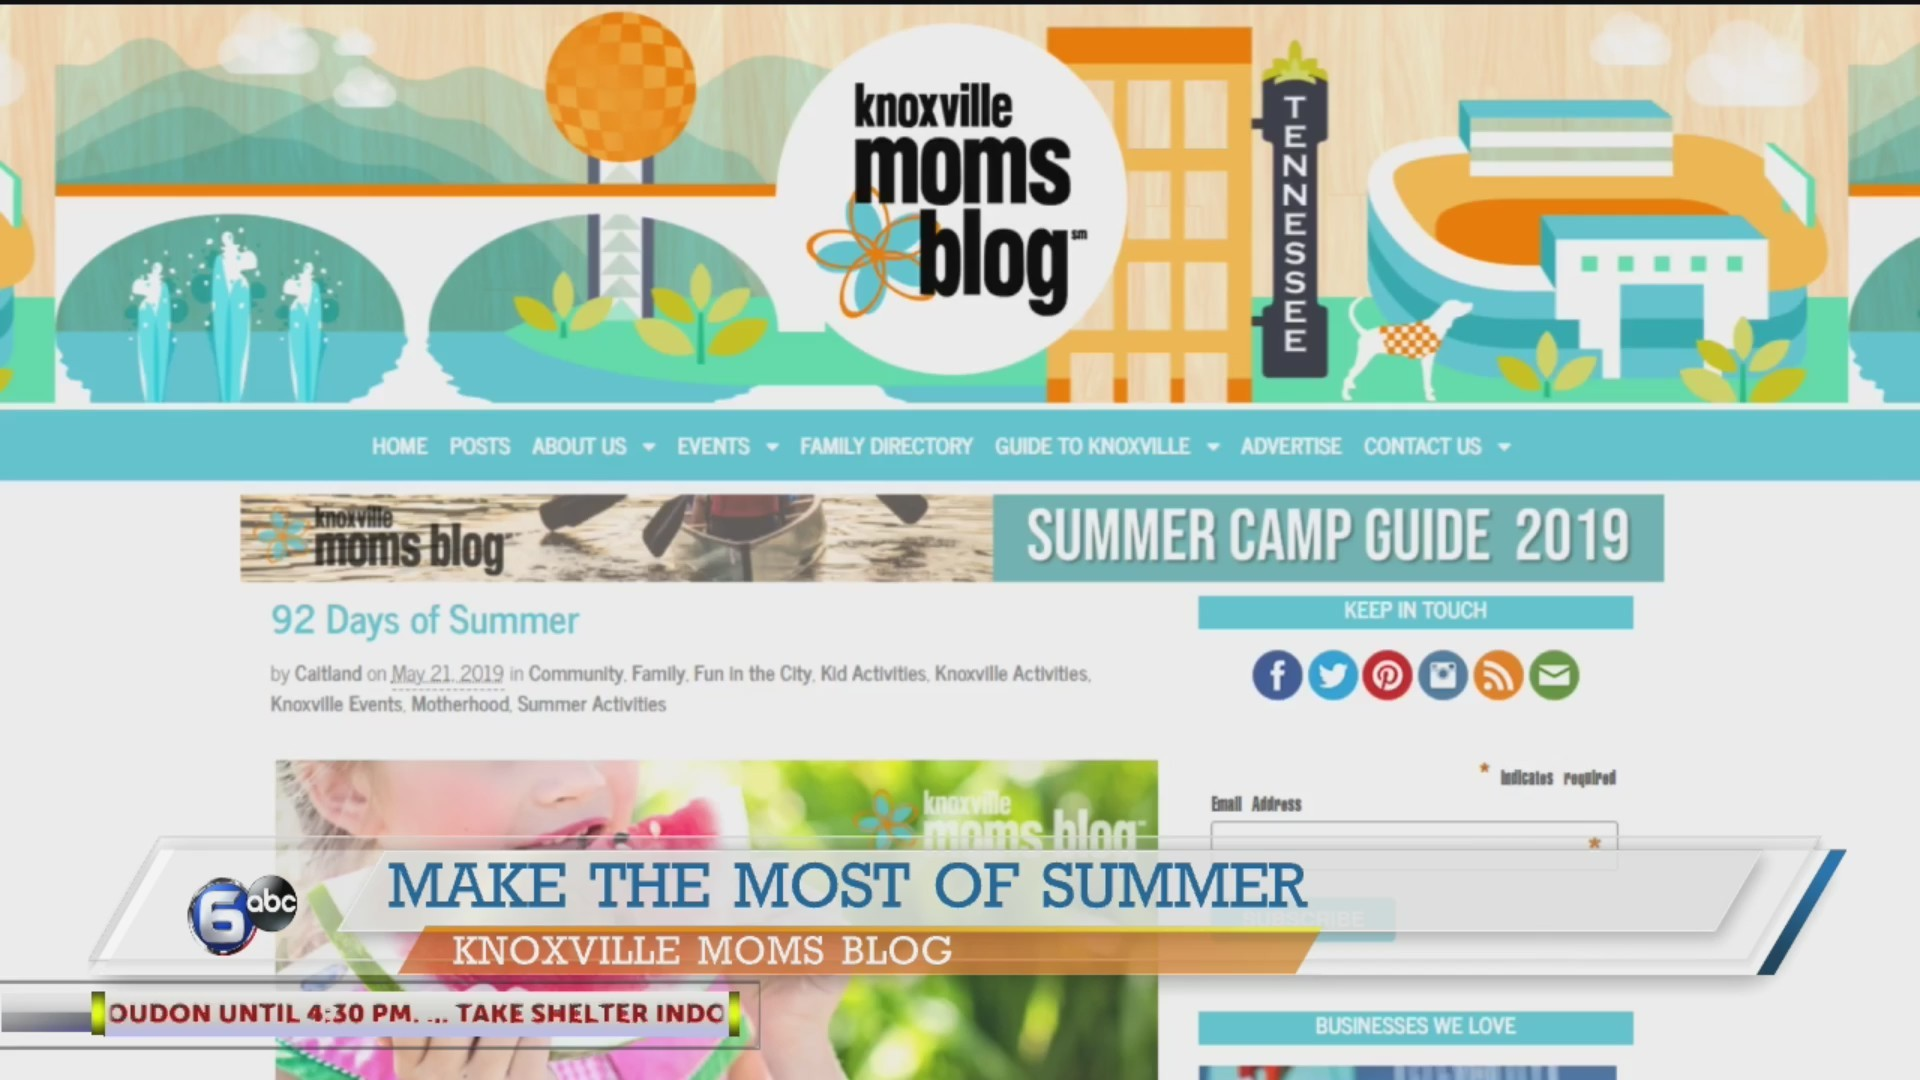 Find some summer fun with Knoxville Moms Blog